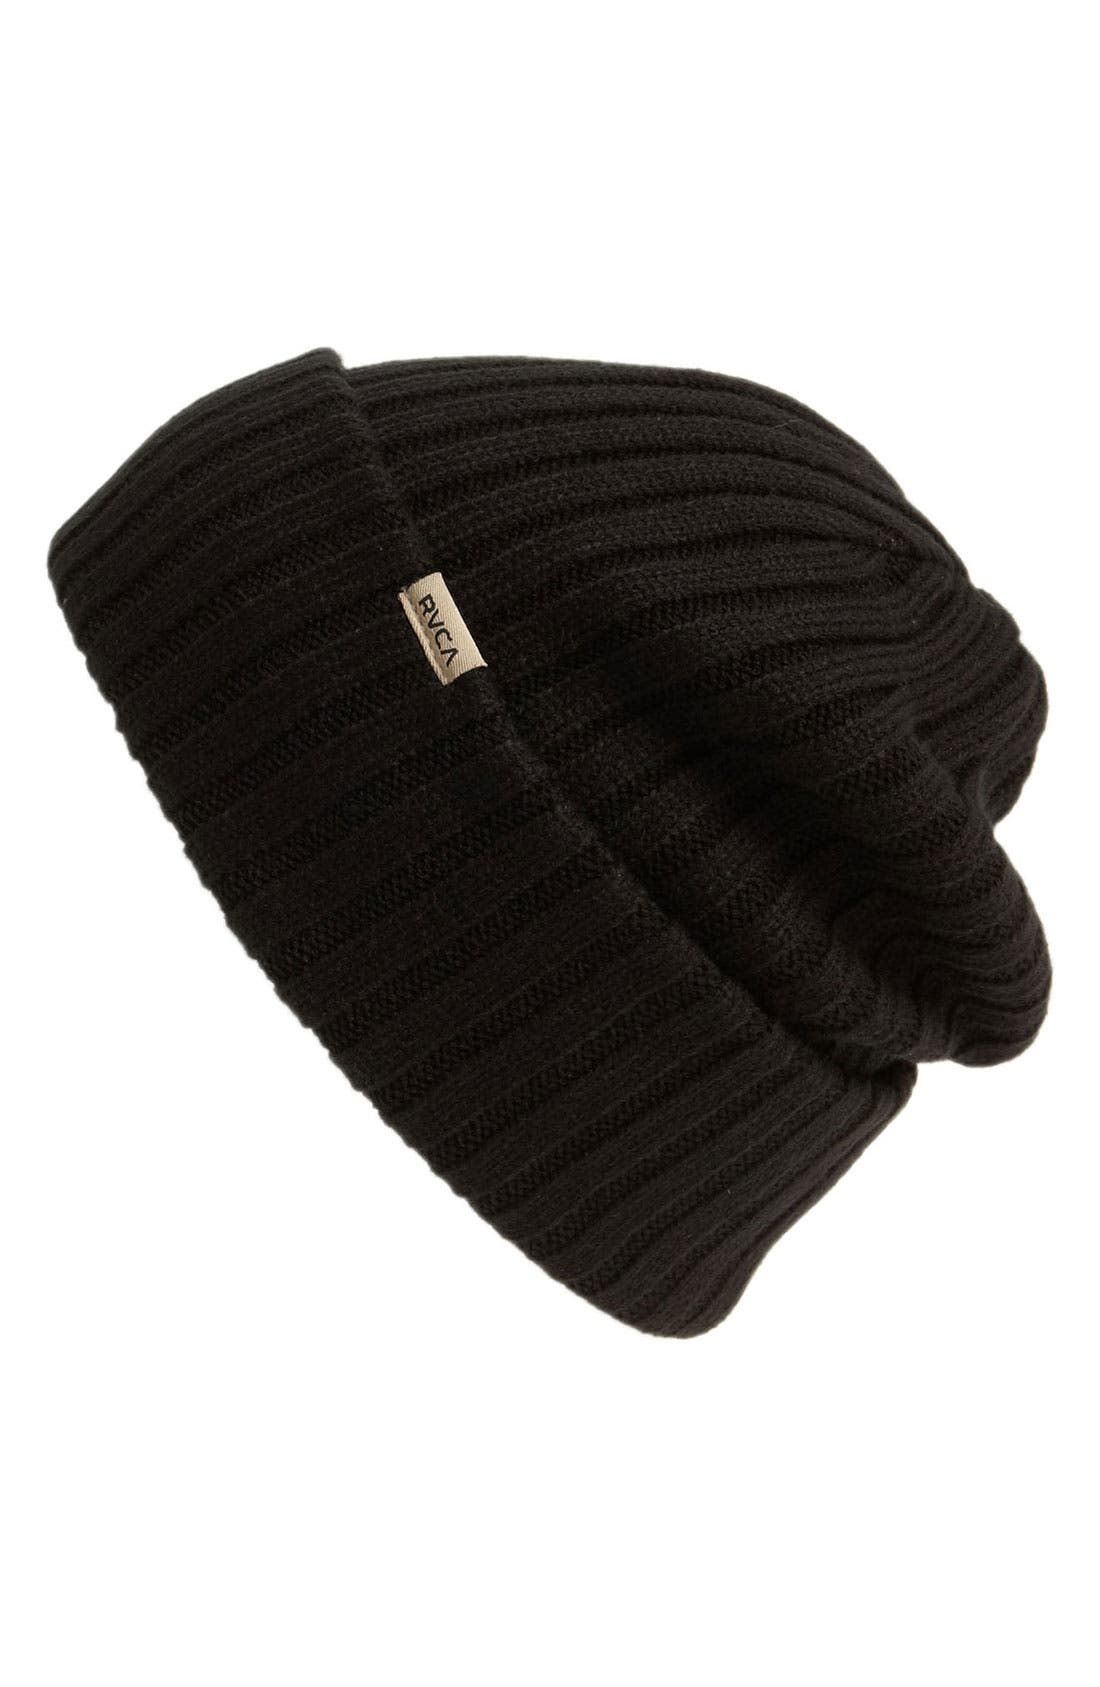 Alternate Image 1 Selected - RVCA 'Prime Rib' Beanie